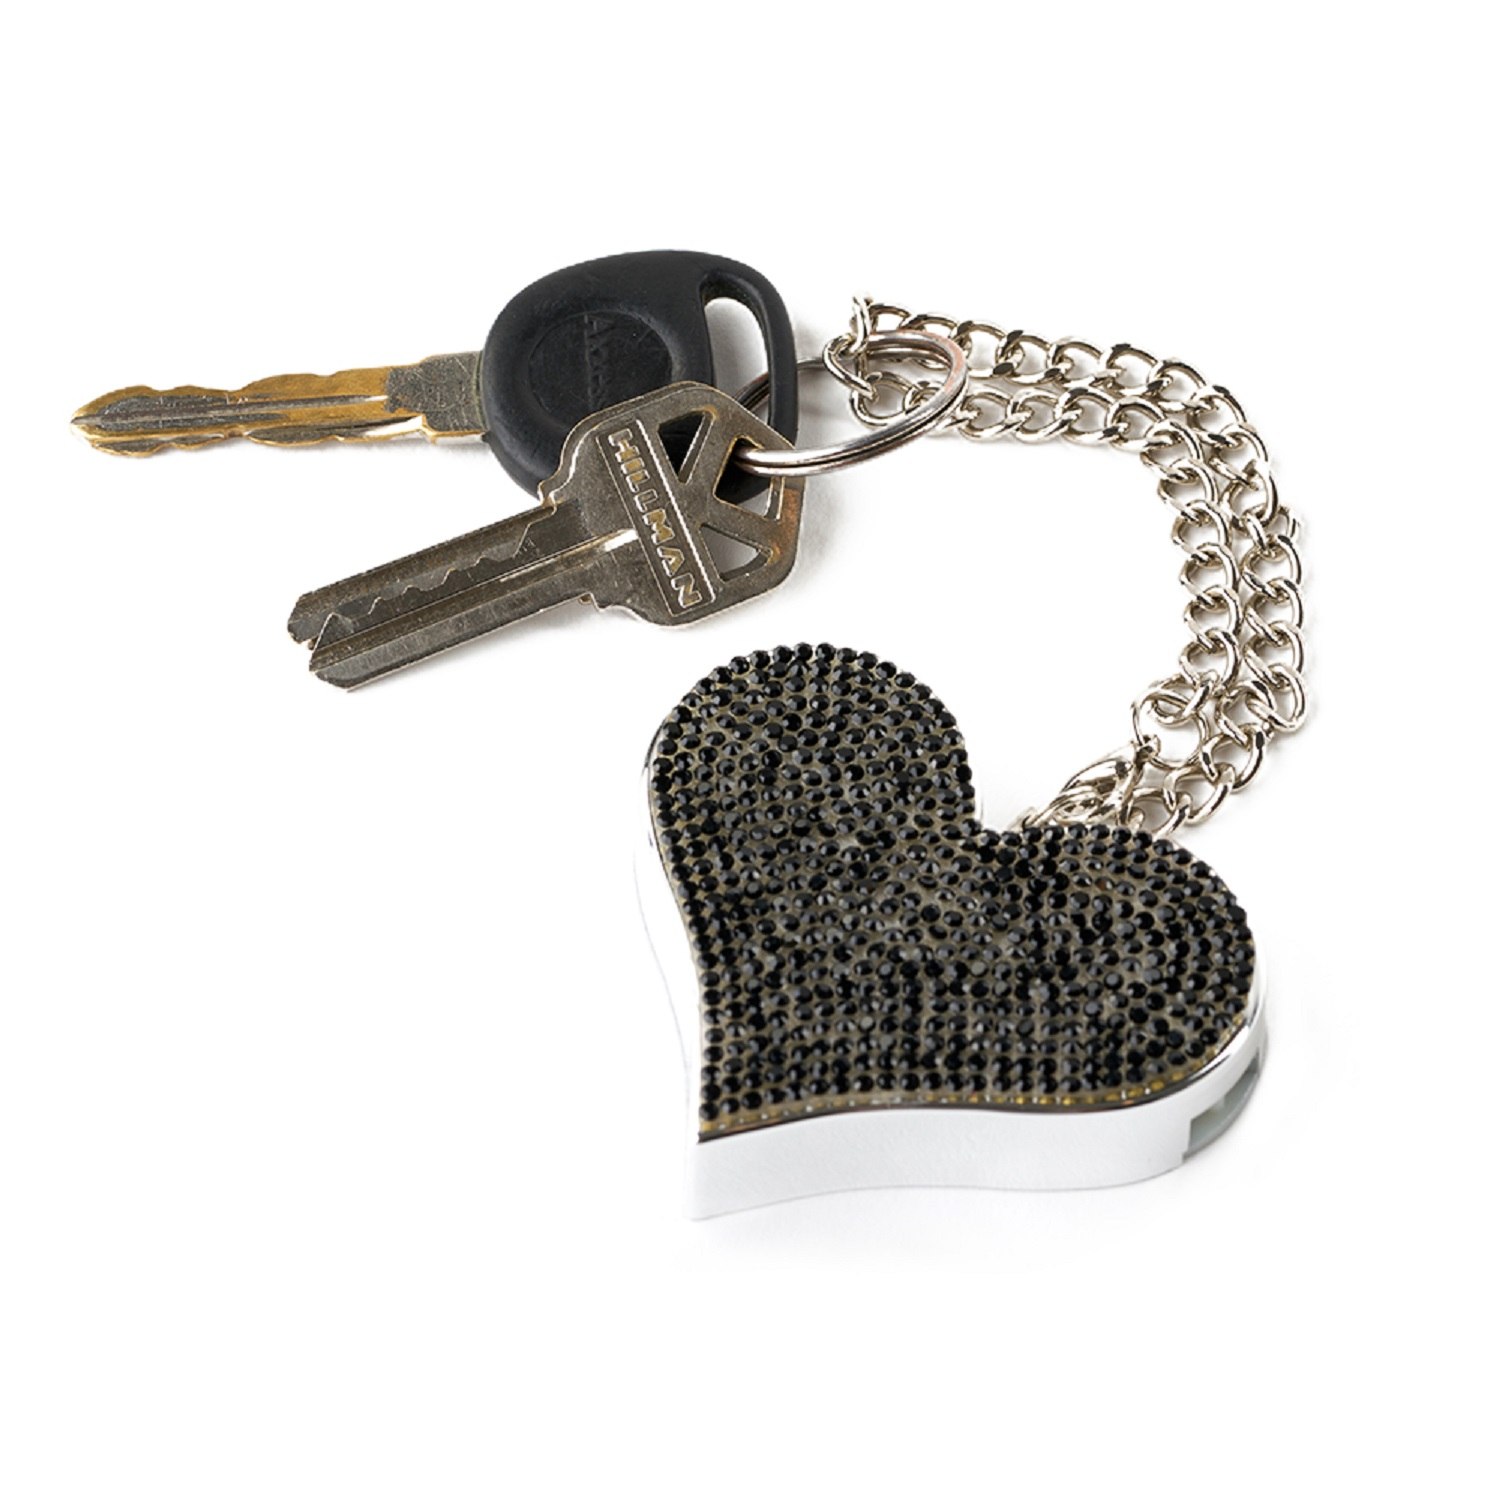 Guard Dog HeartBeat Keychain Alarm Black